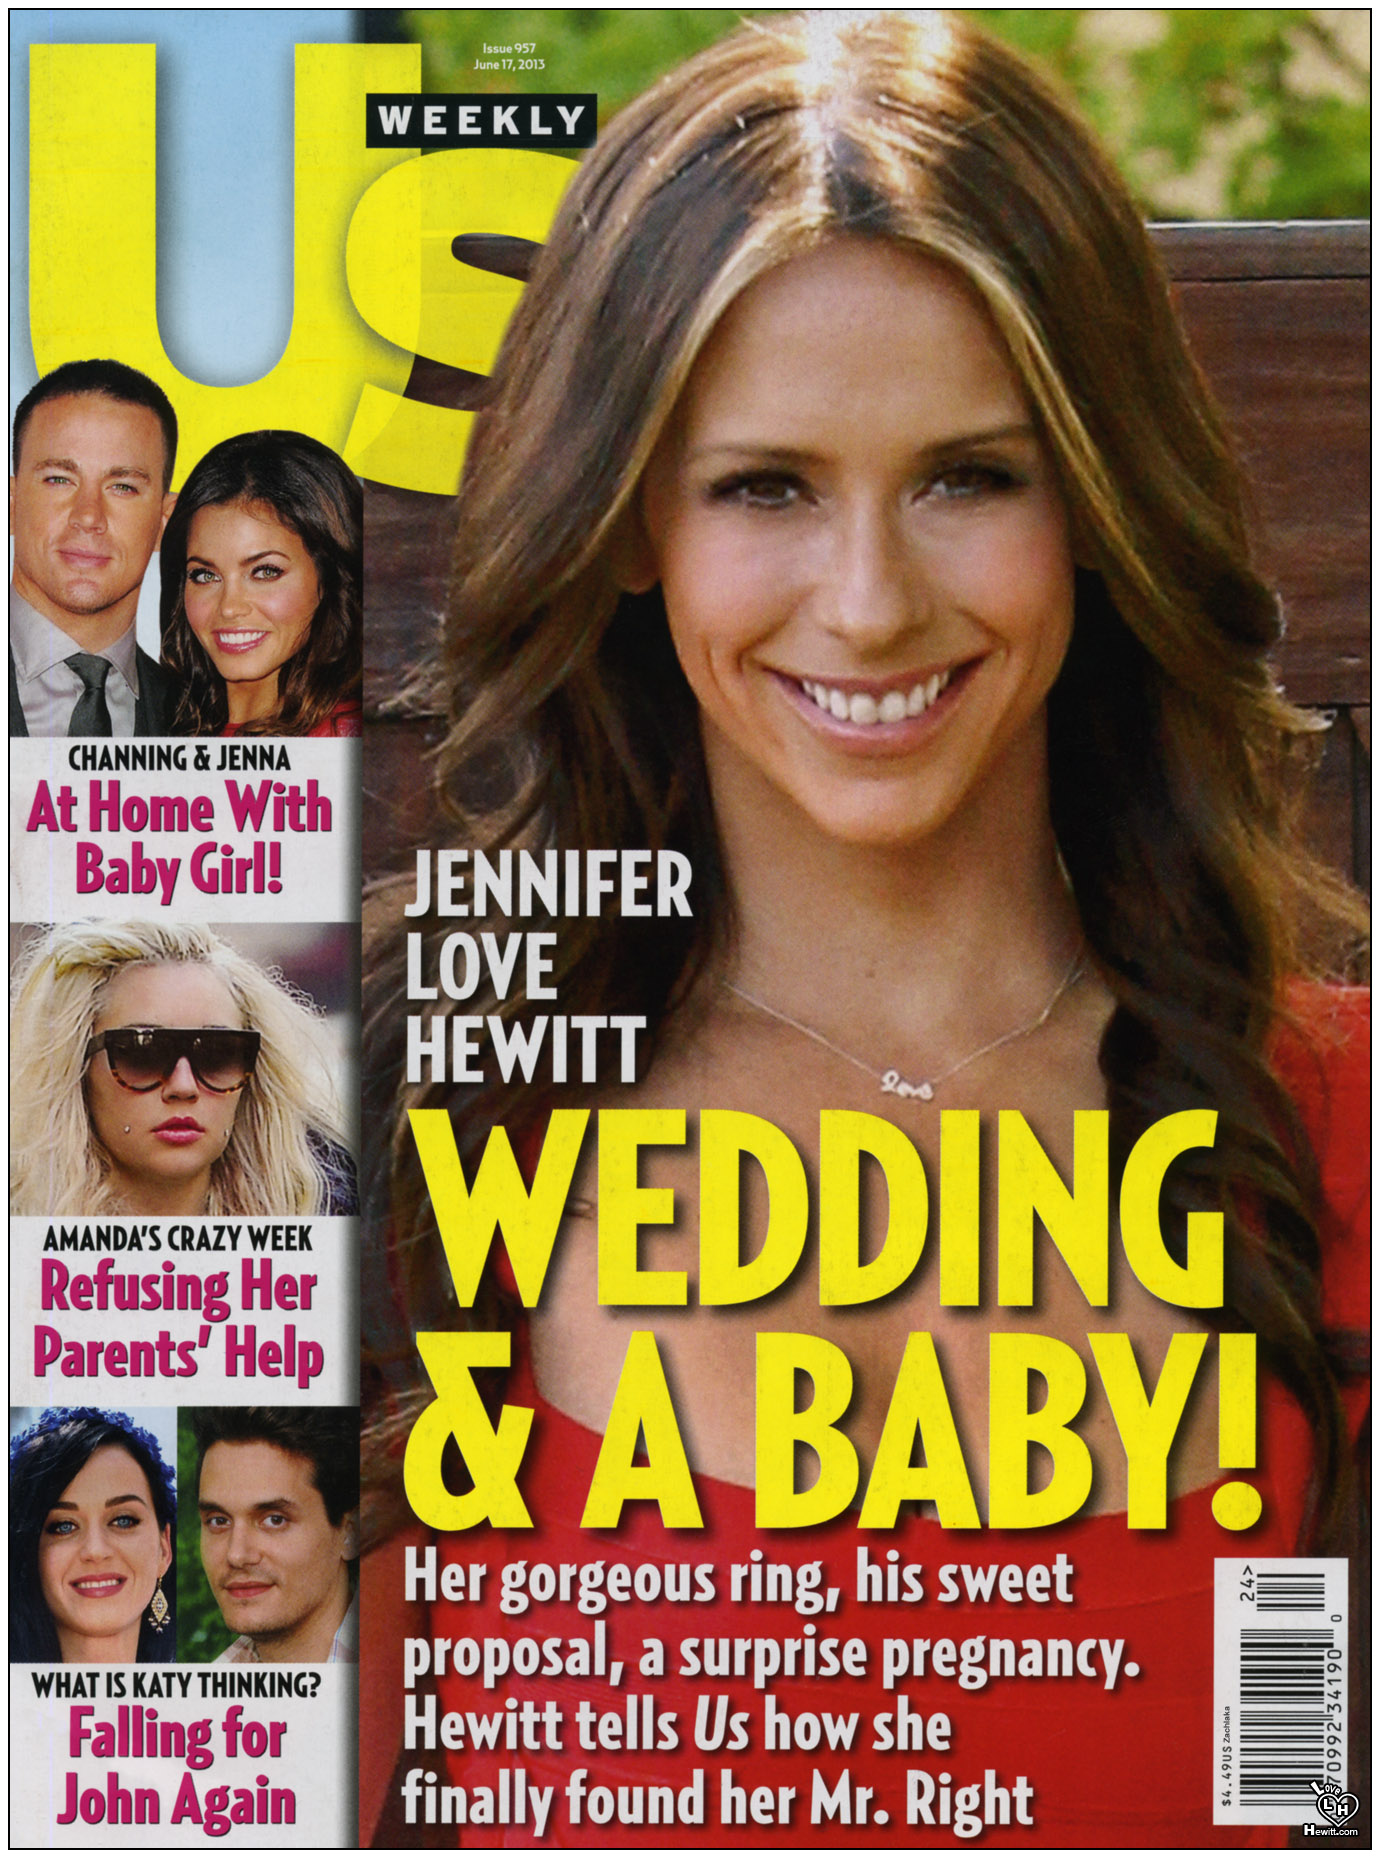 Us weekly celebrity fantasy